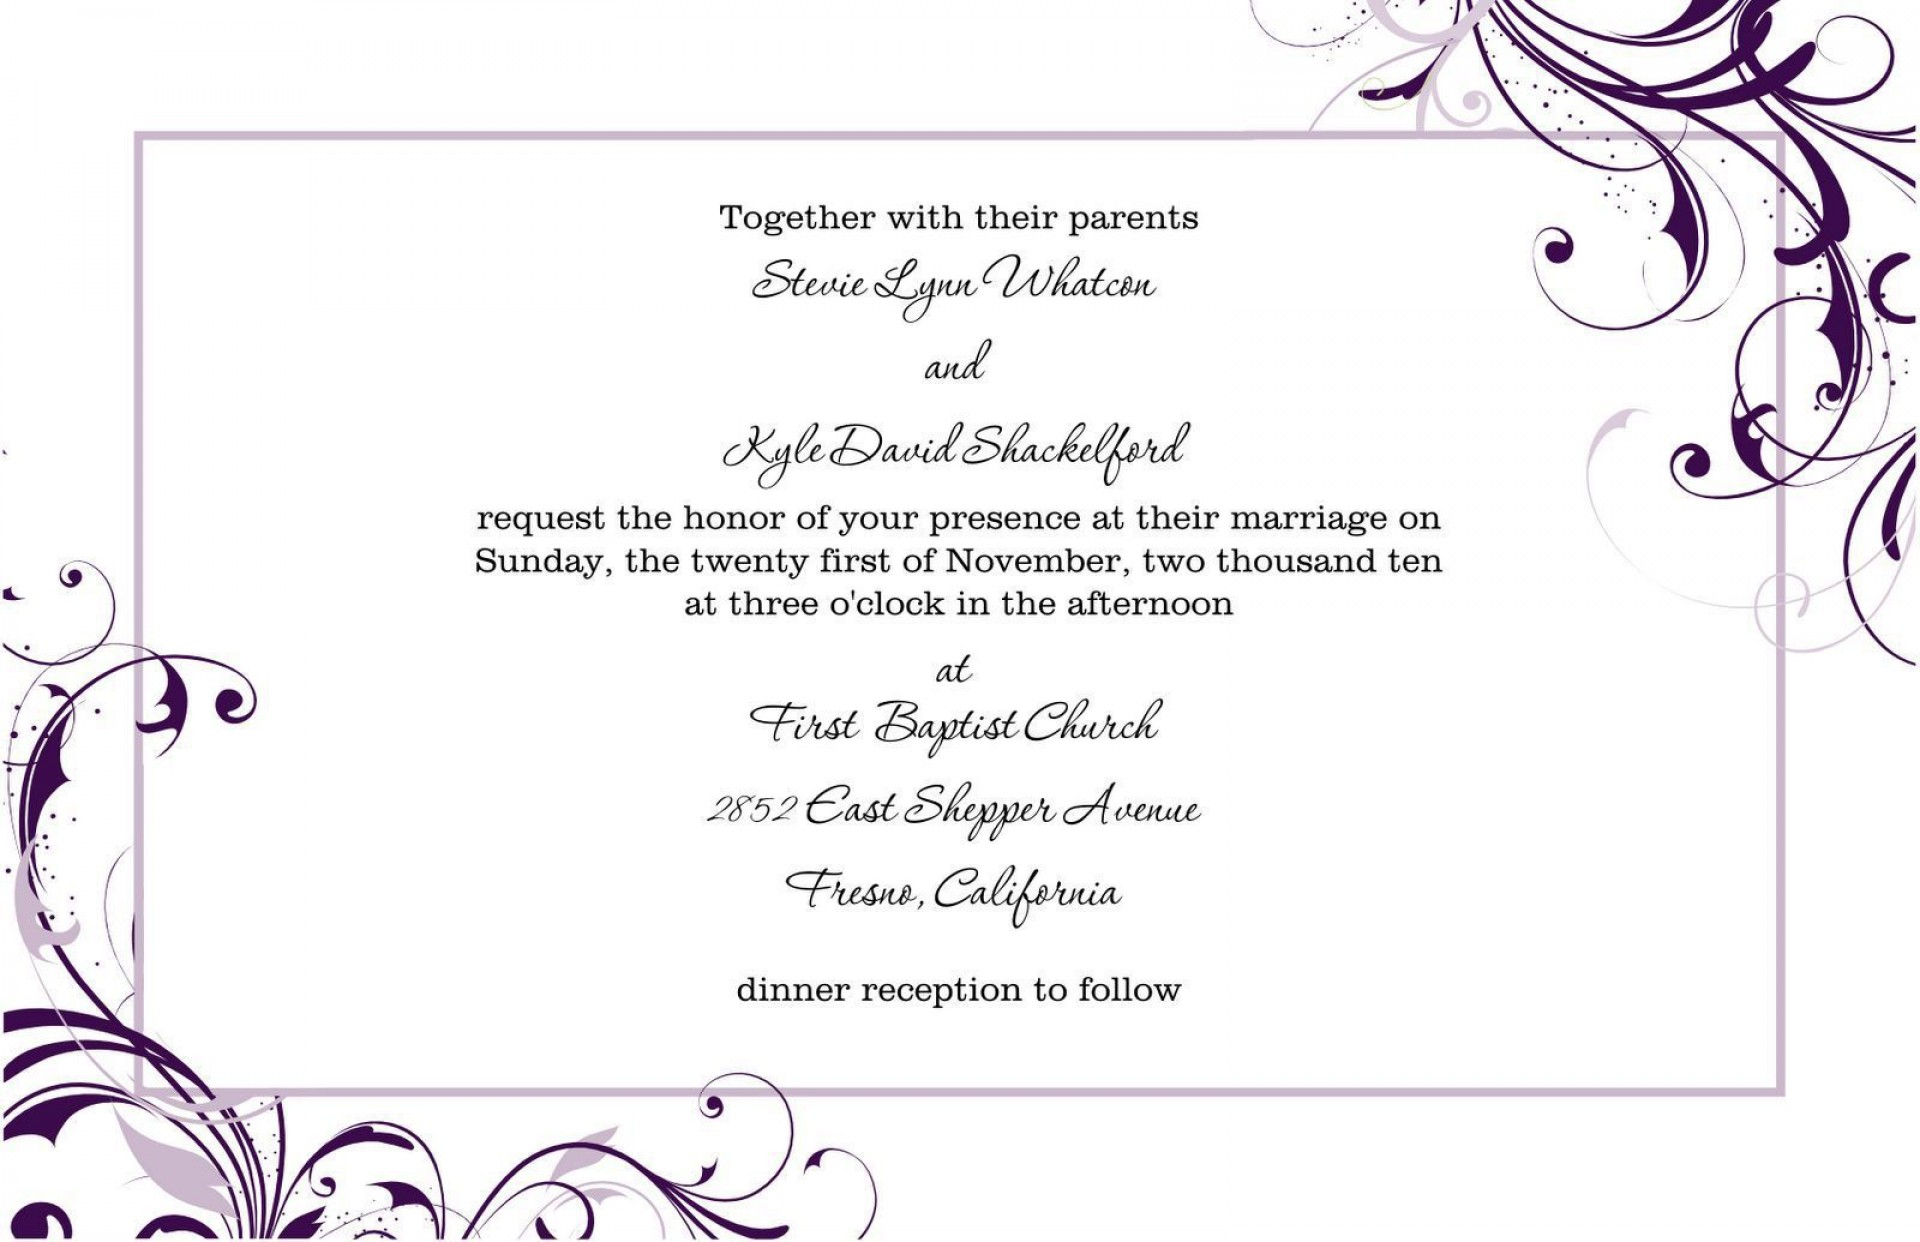 006 Unusual Microsoft Word Invitation Template Example  Templates Baby Shower Free Graduation Announcement For Wedding1920